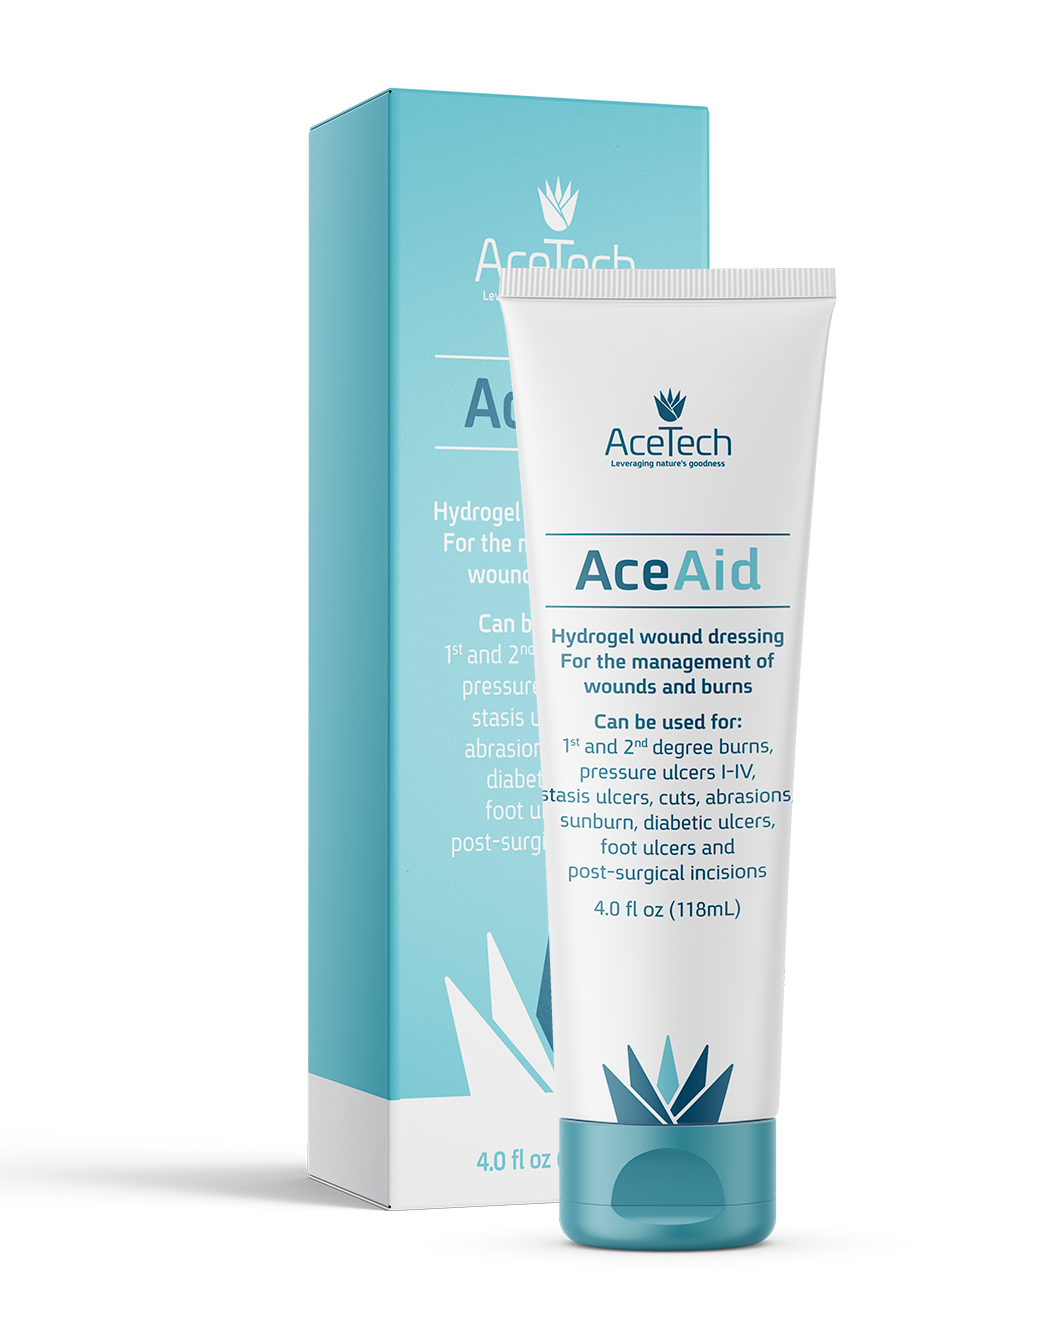 AceAid product